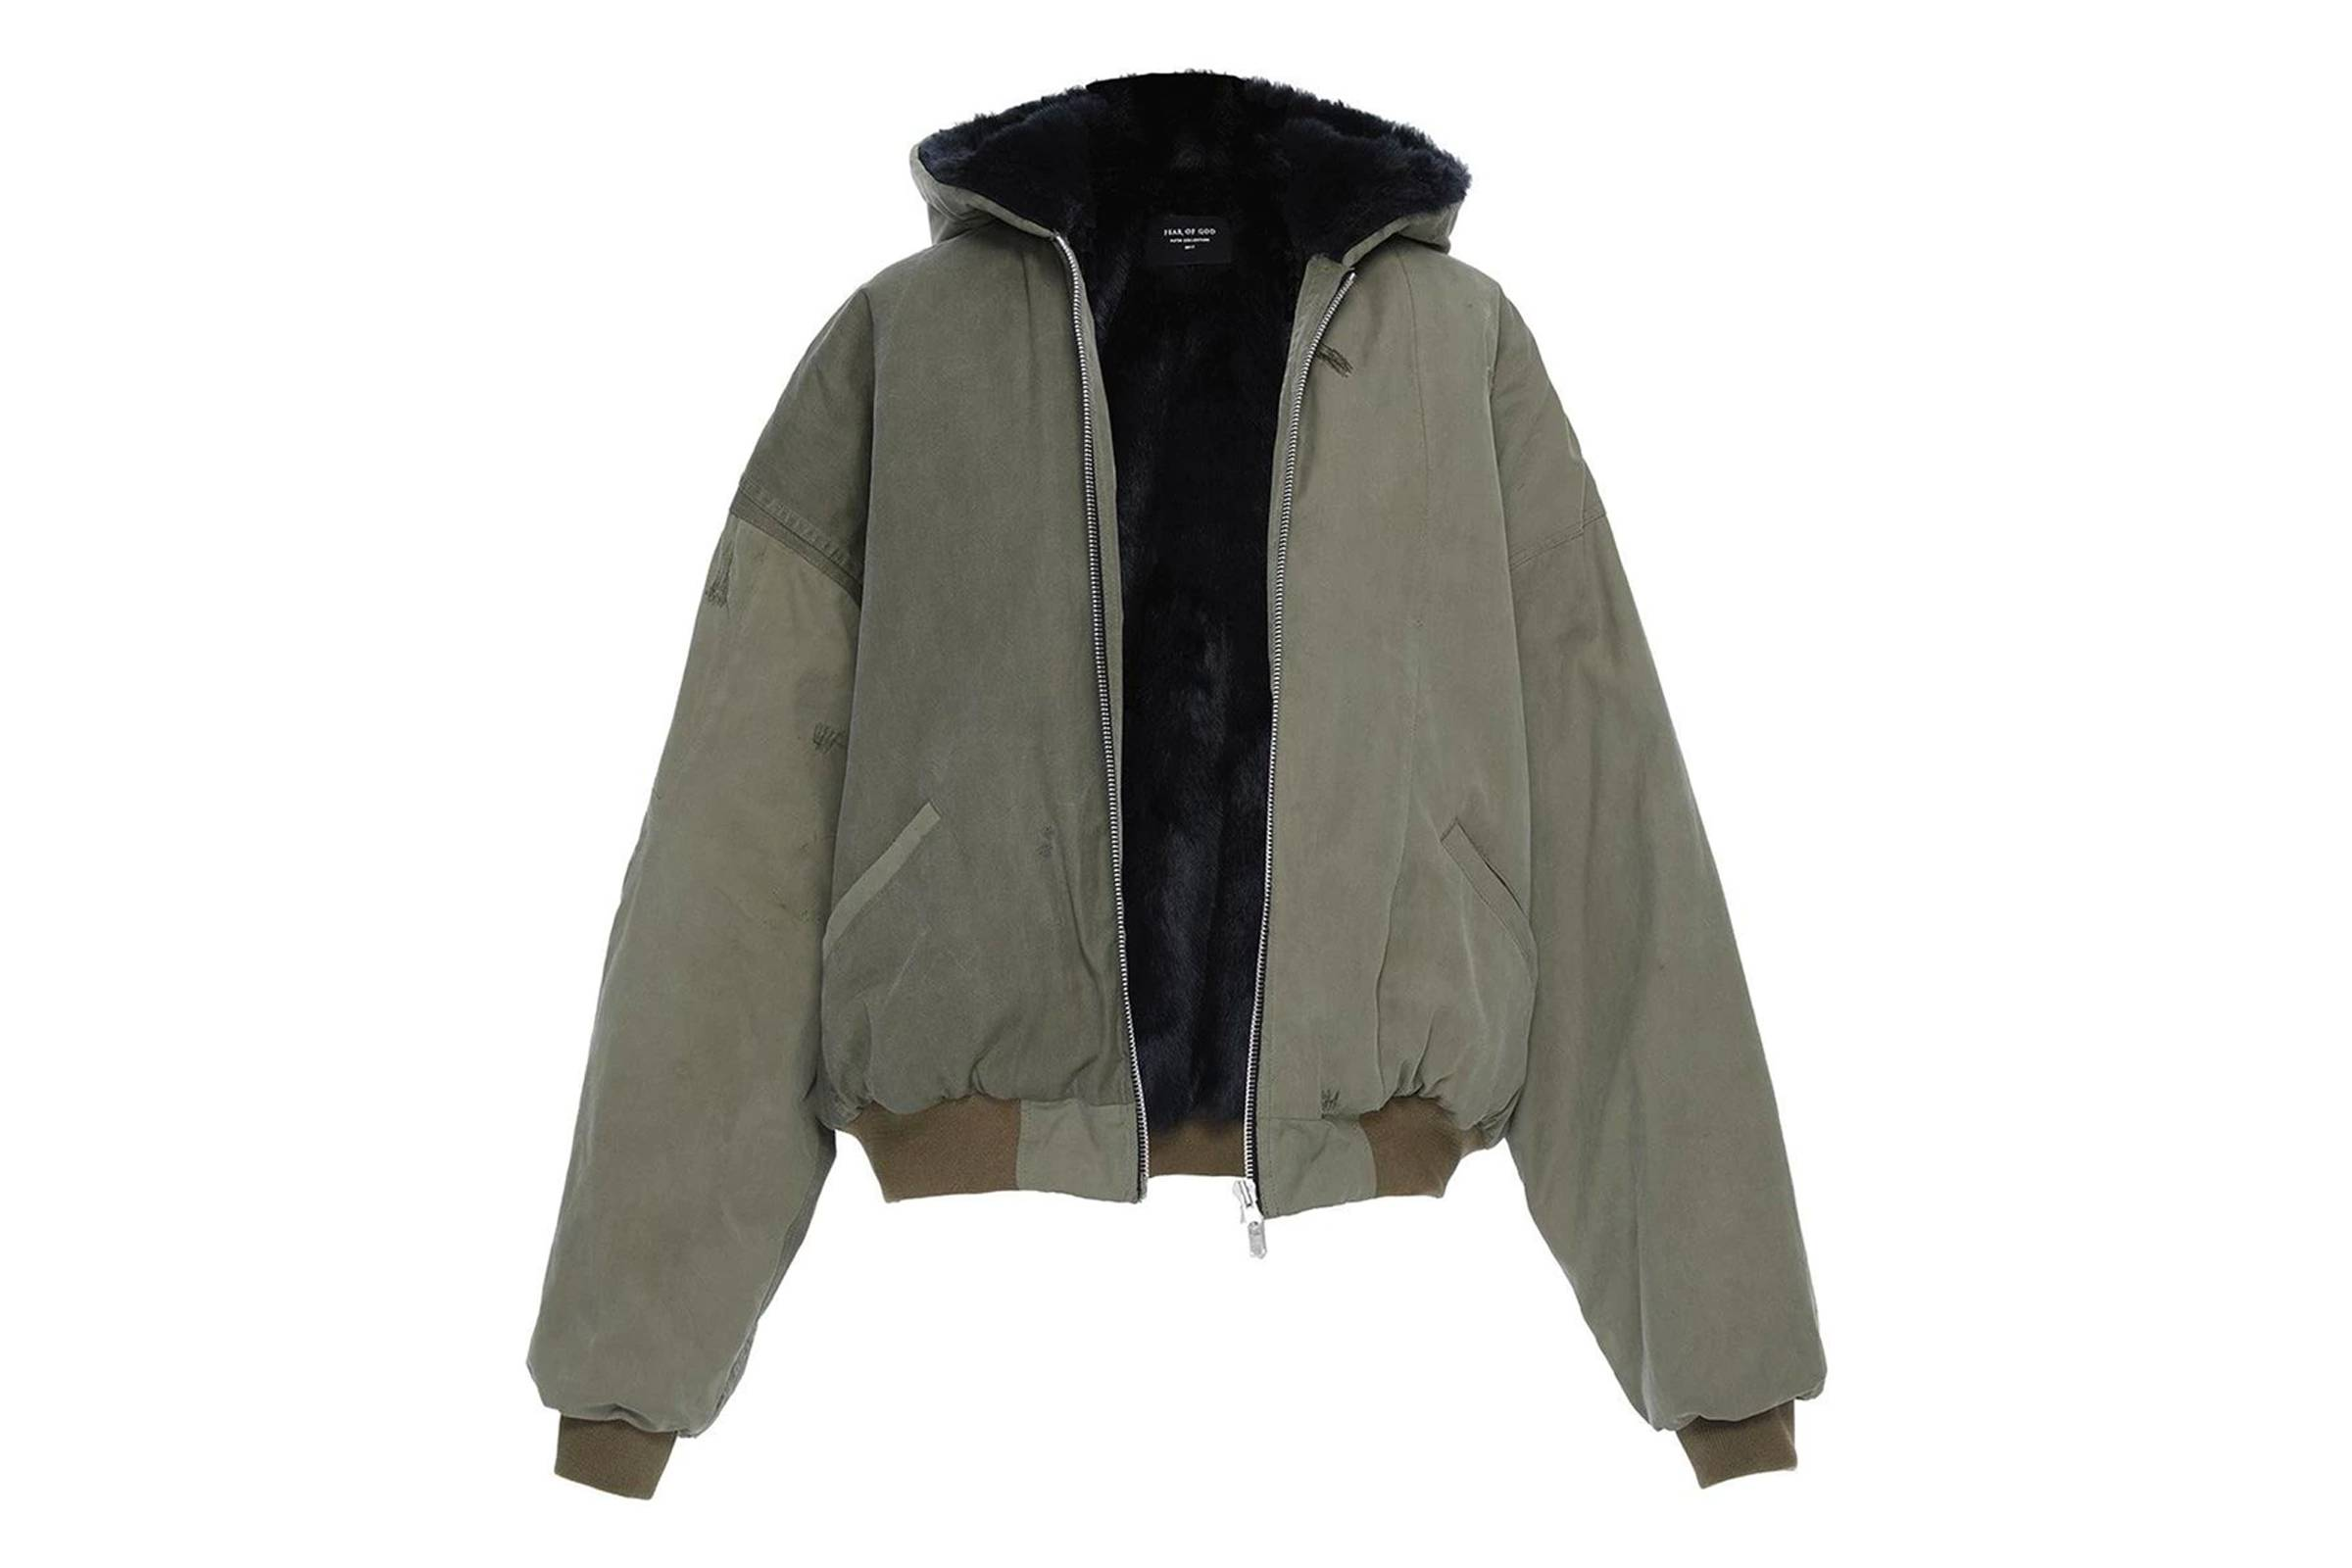 Fear of God 5th Collection Faux Fur Vintage Military Bomber